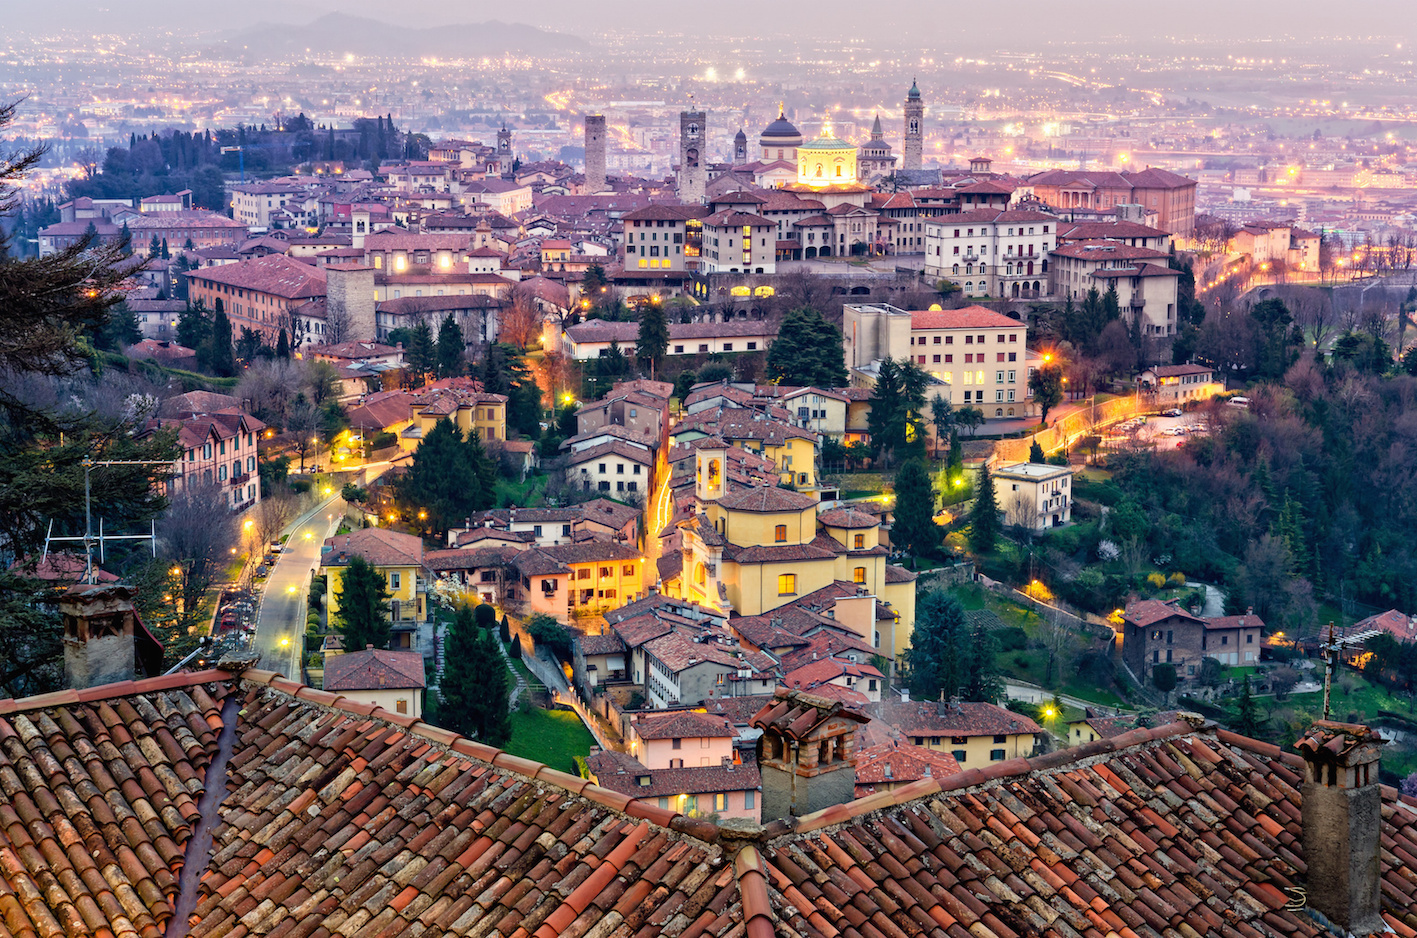 Panorama di Bergamo all'imbrunire